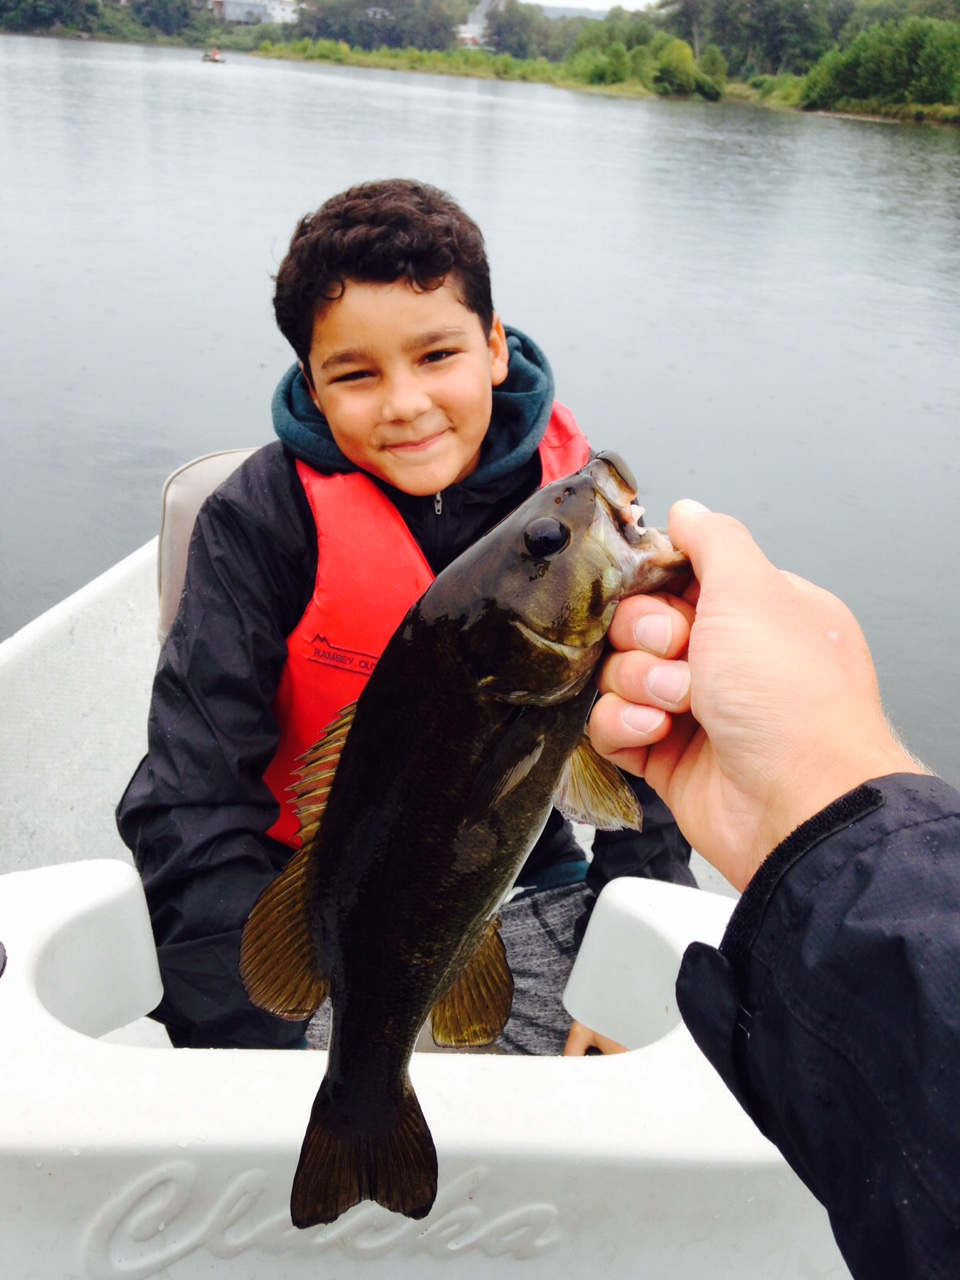 09/12/15A first fish for a new Delaware river angler!